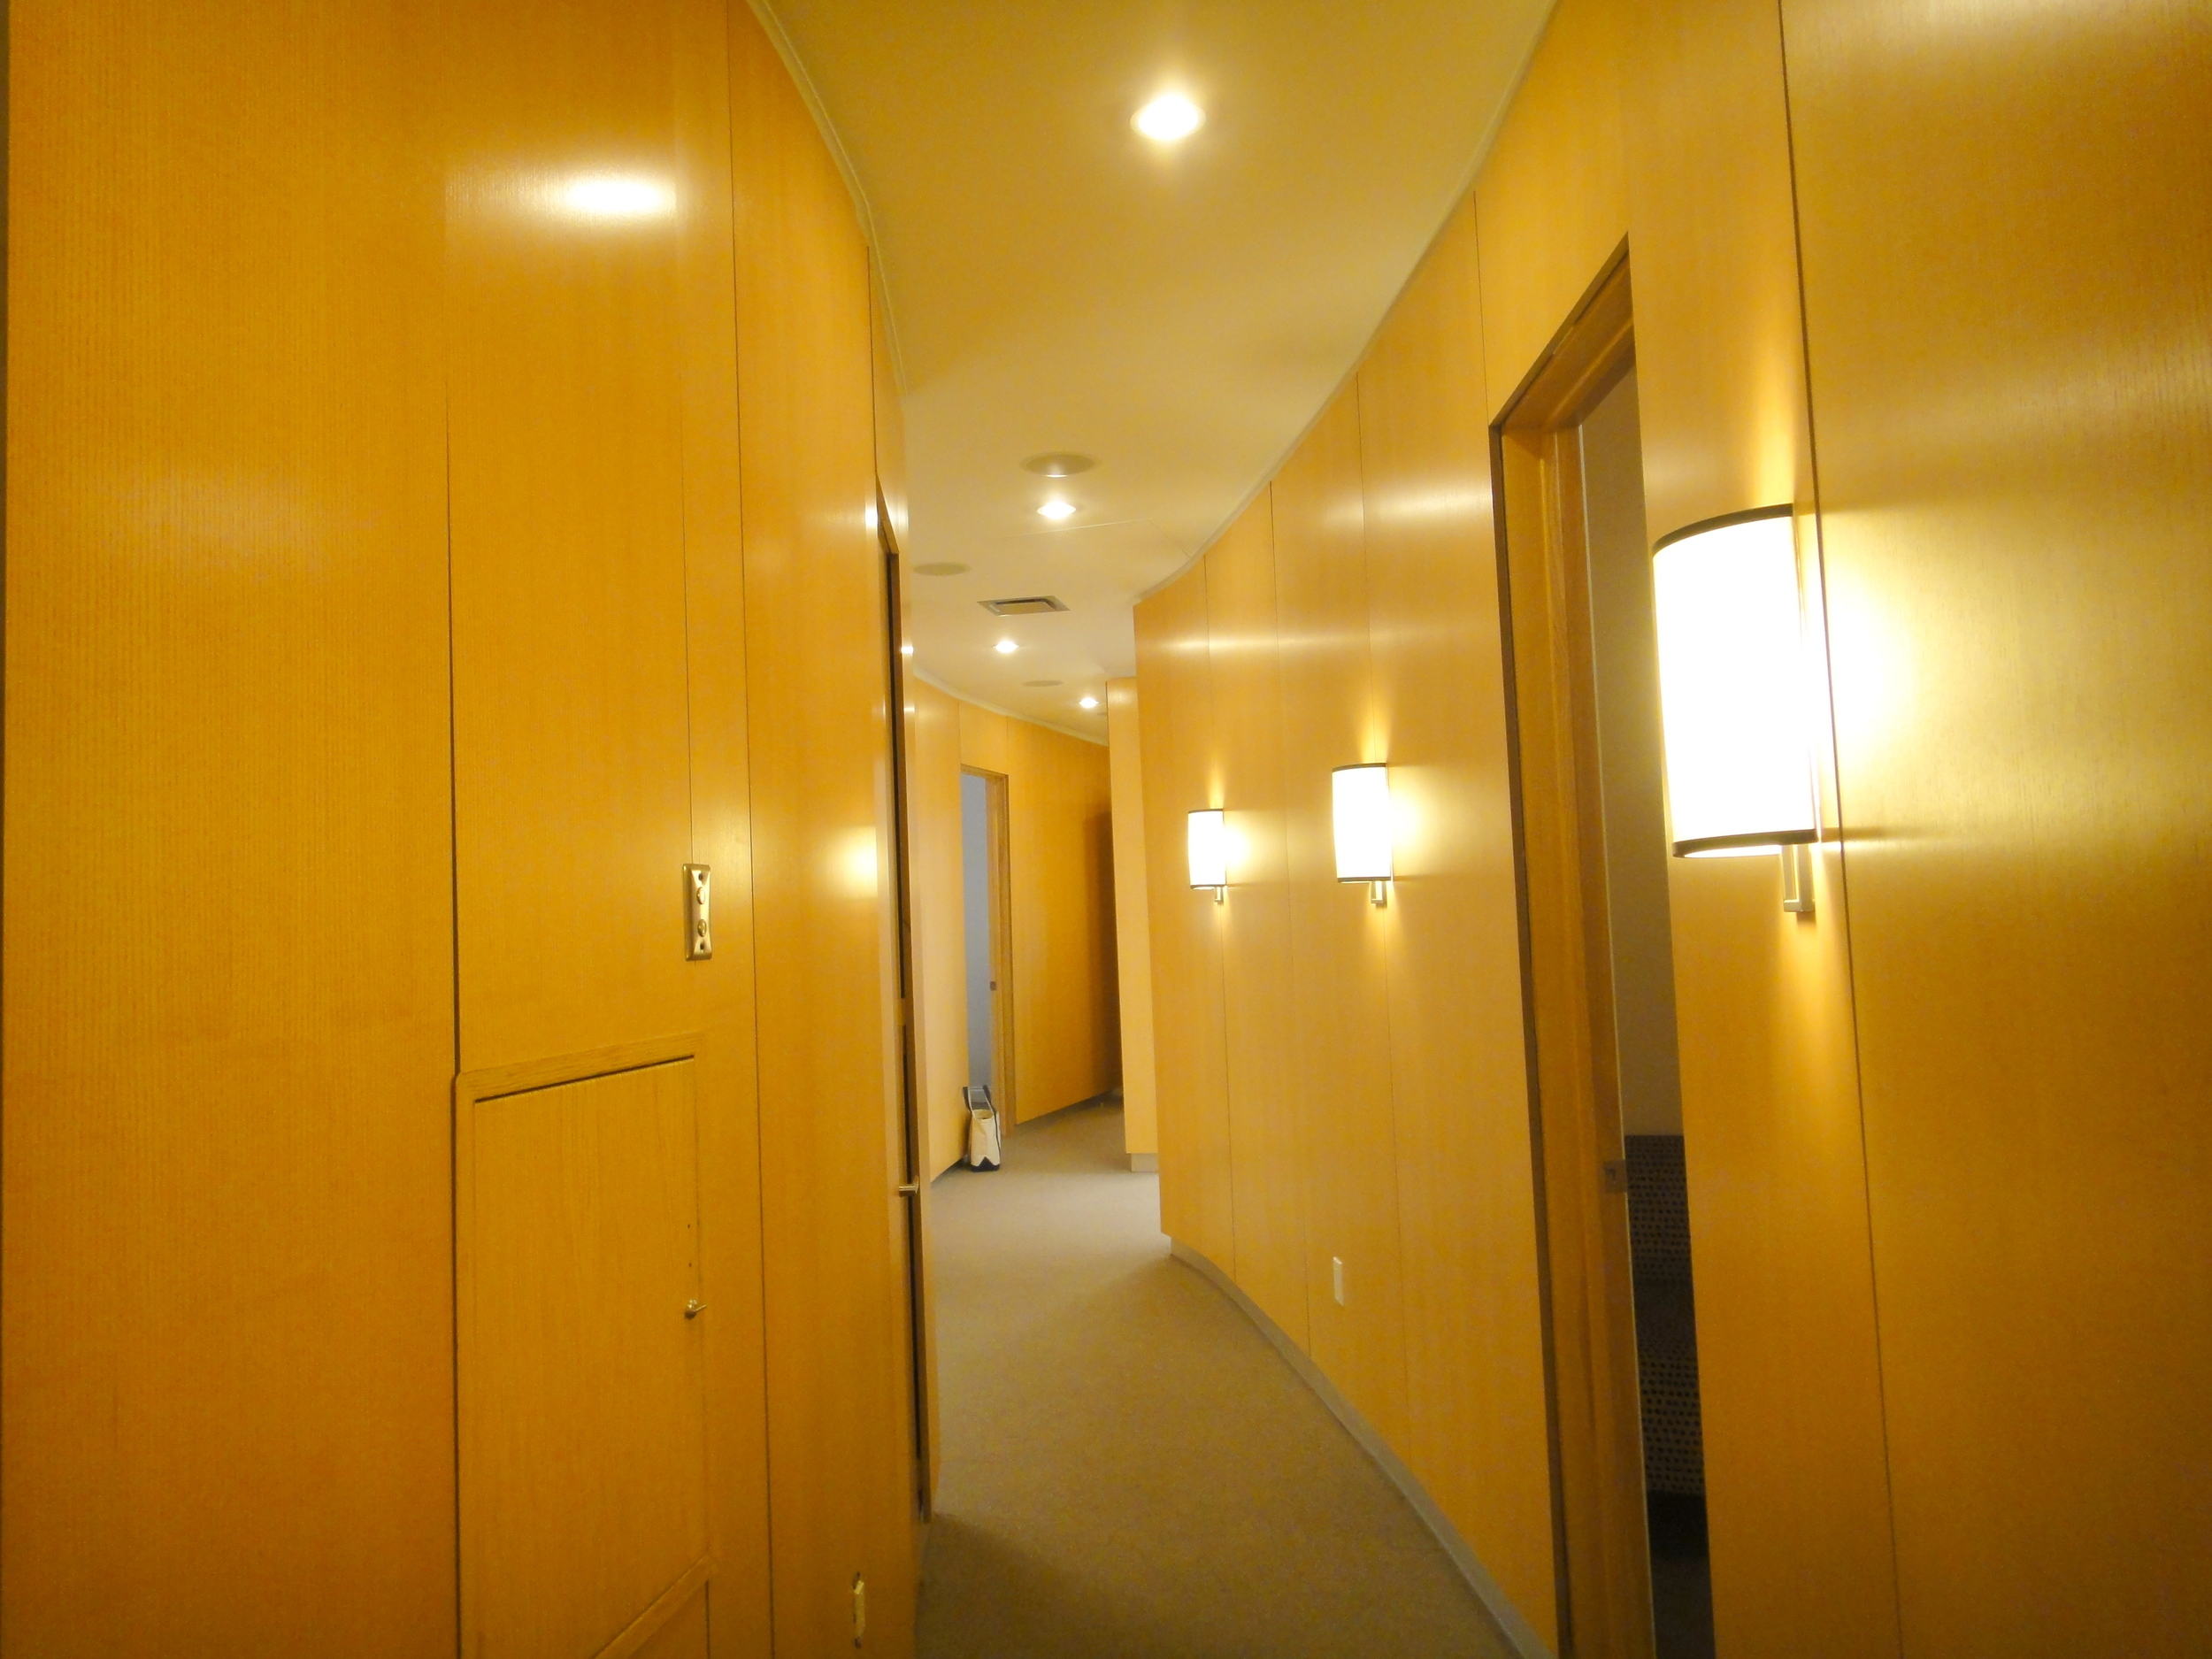 Maintain your privacy in the curved corridors of our discreetly designed floorplan.